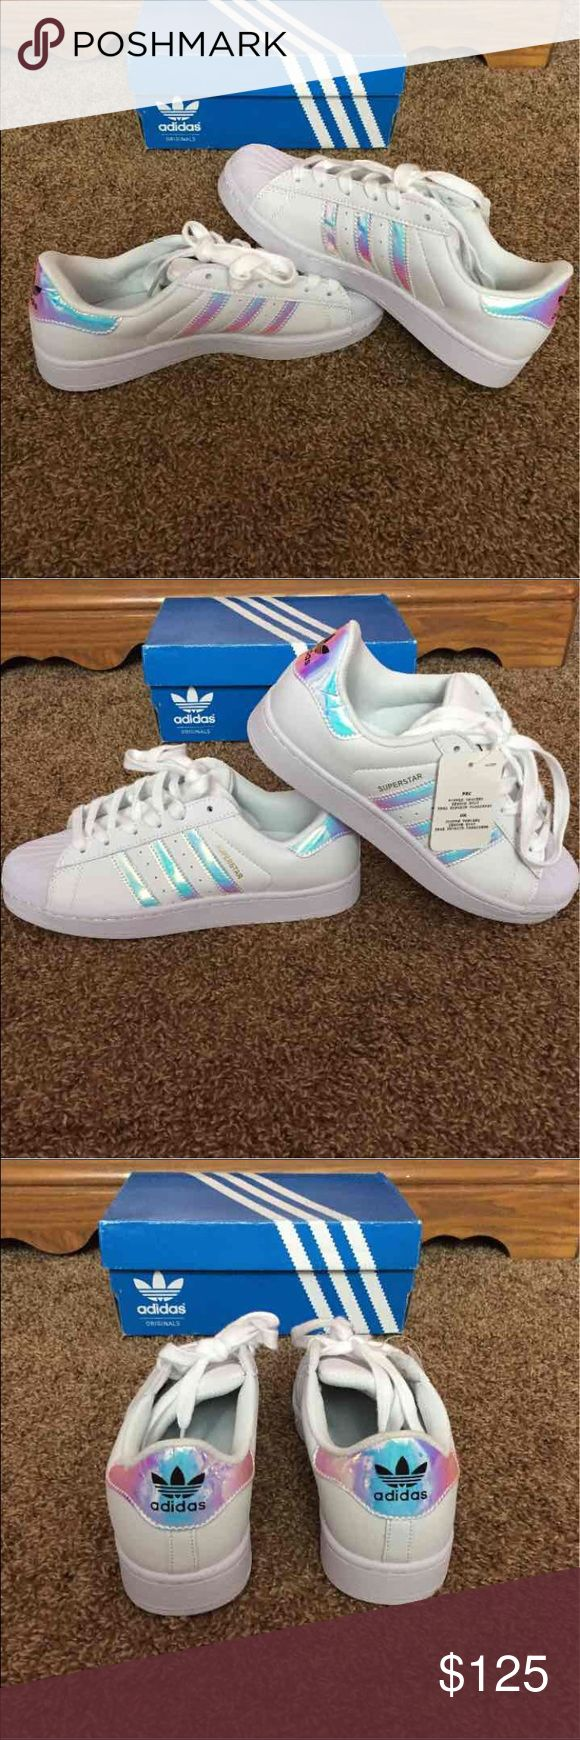 *OFFERS* Holographic Adidas Superstars Gorgeous limited edition adidas superstars. This is super RARE and no longer made so grab it while you can. Brand new with box. Will accept reasonable offers made with the offer button. I do not trade.                                                            Men's 7 or Women's 8                                                 Less on Ⓜ️ercari Adidas Shoes Athletic Shoes